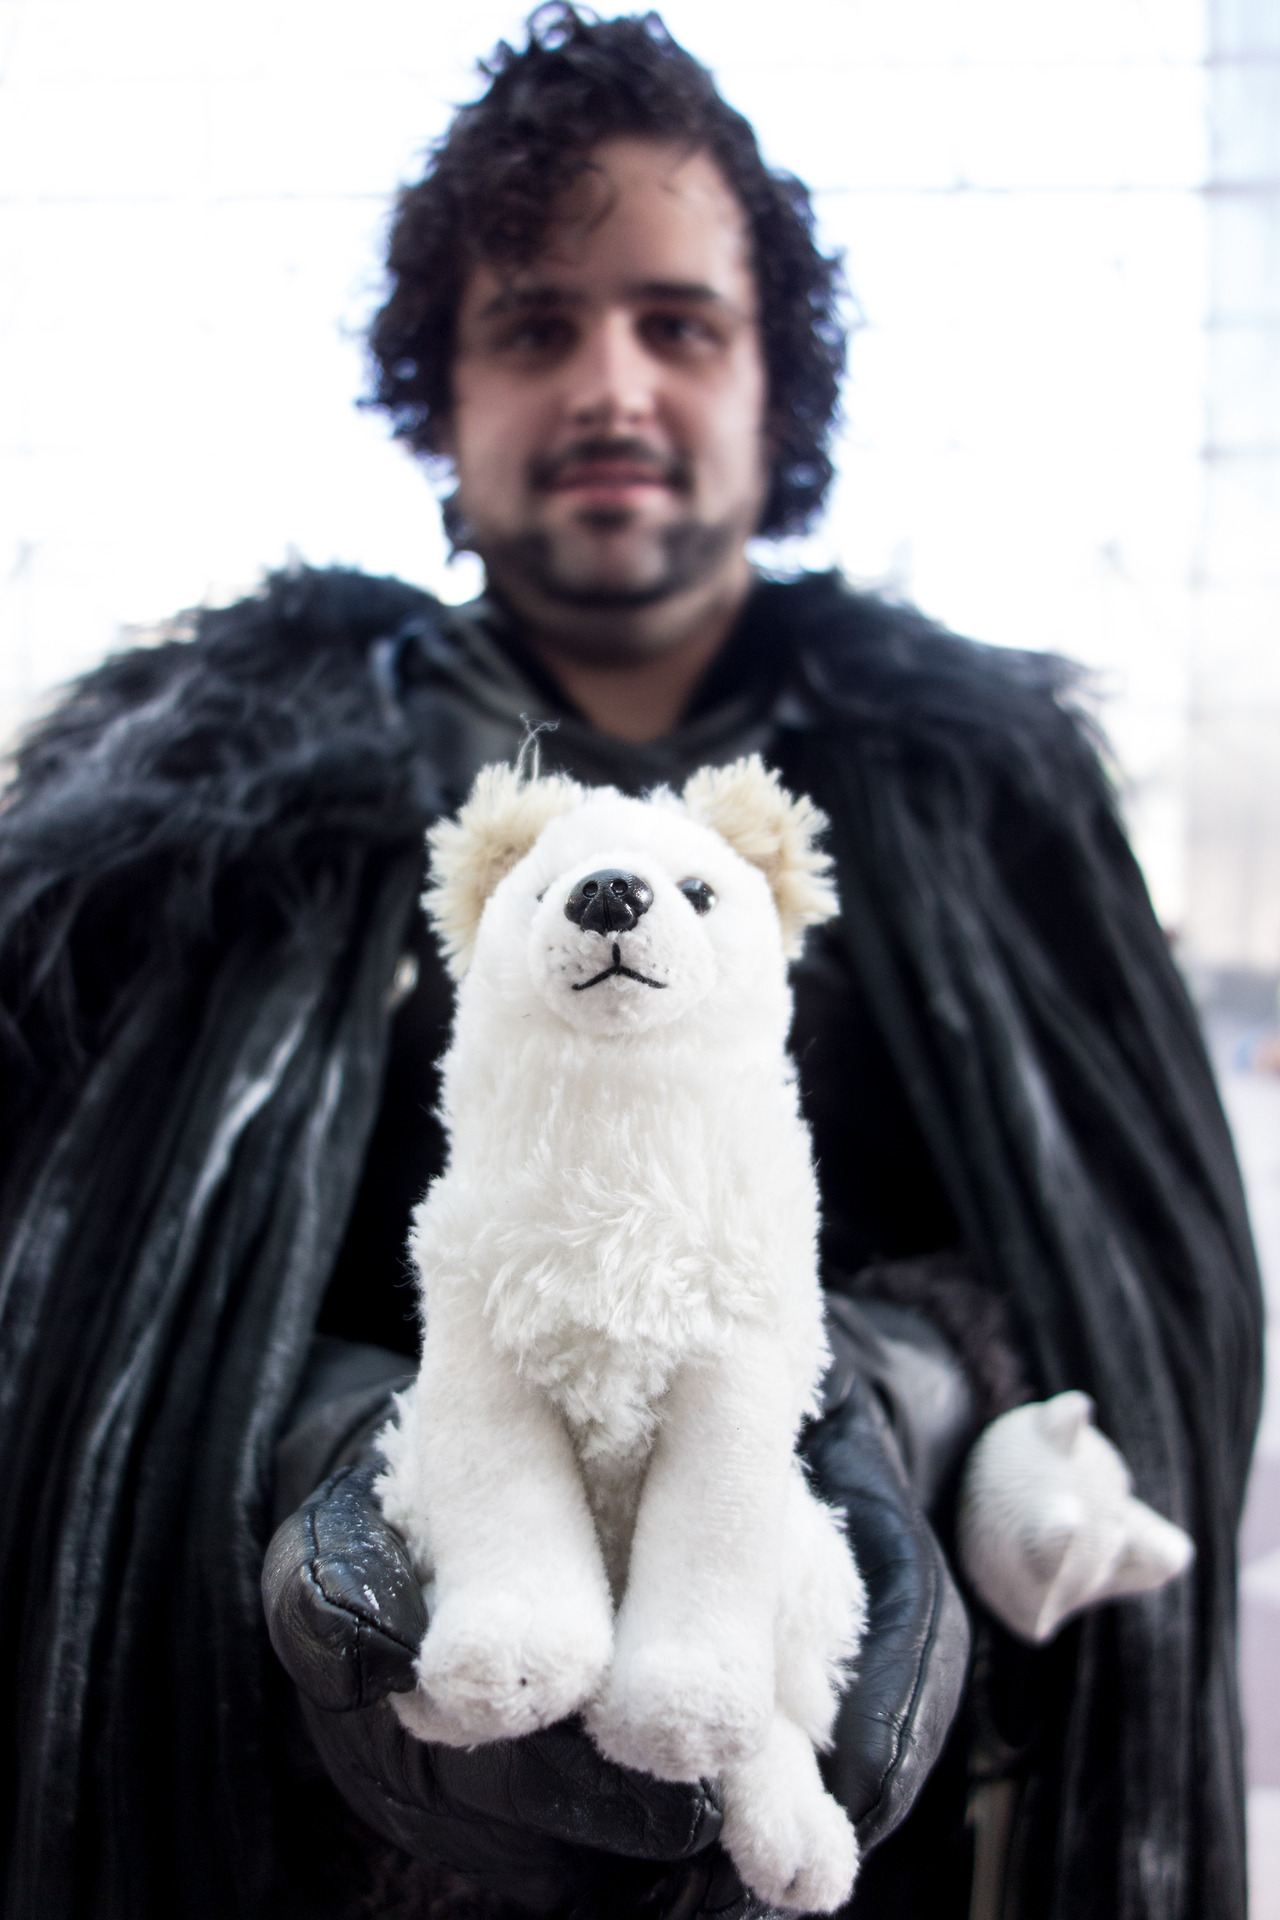 In honor of Game of Thrones S2 coming out on DVD/Blu-ray tonight, here's a Jon Snow cosplayer (with his direwolf Ghost) from last year's New York Comic Con.